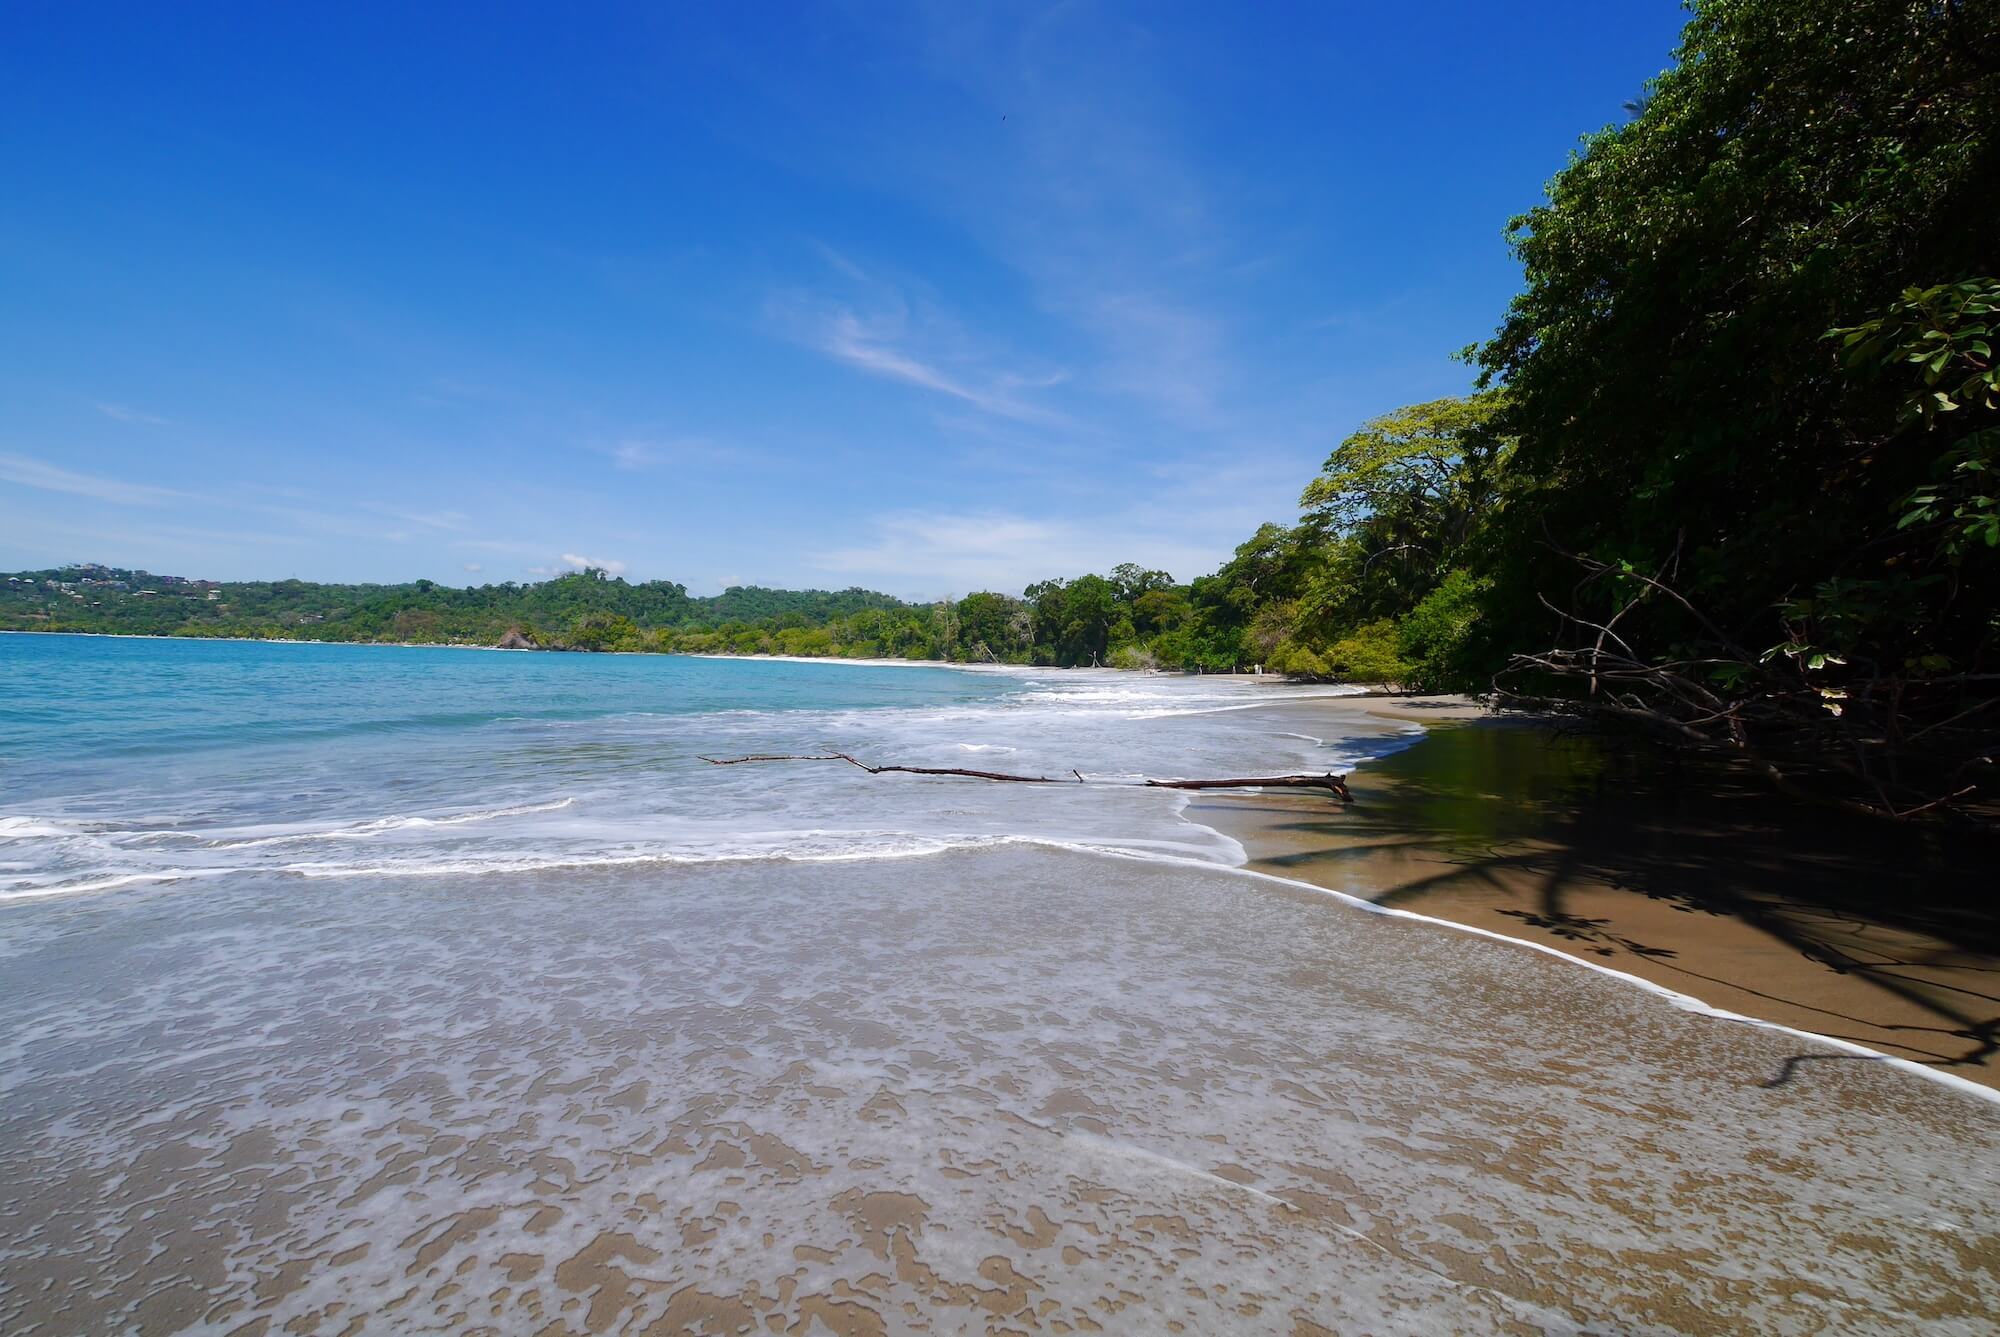 playa Manuel Antonio beach, stunning Caribbean beaches